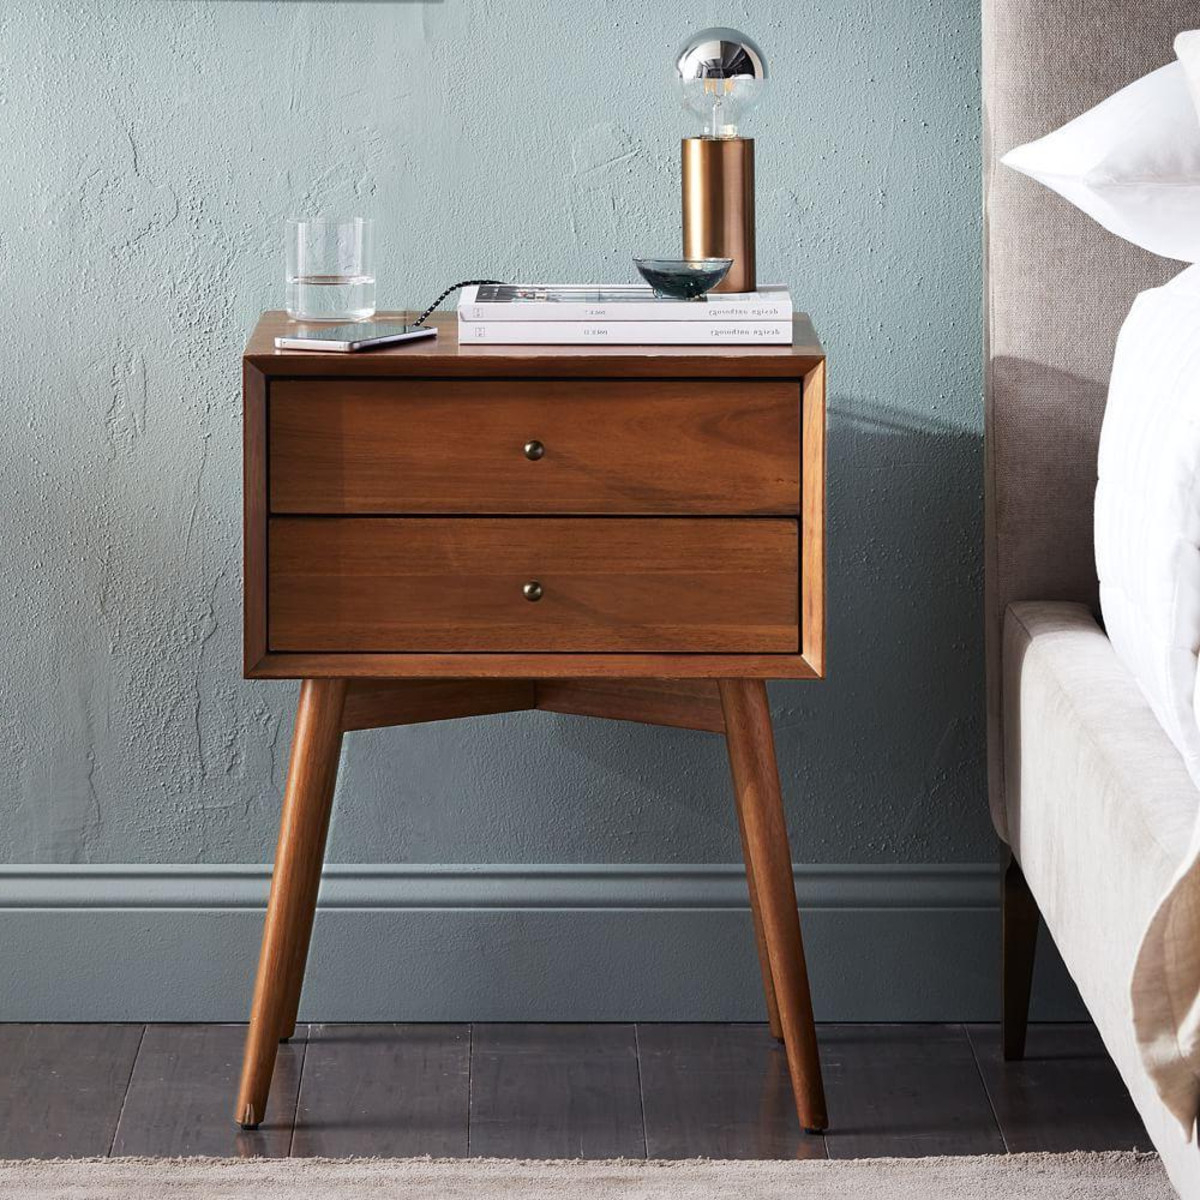 Bedside Tables Ipdd Mid Century Bedside Table Acorn West Elm Uk